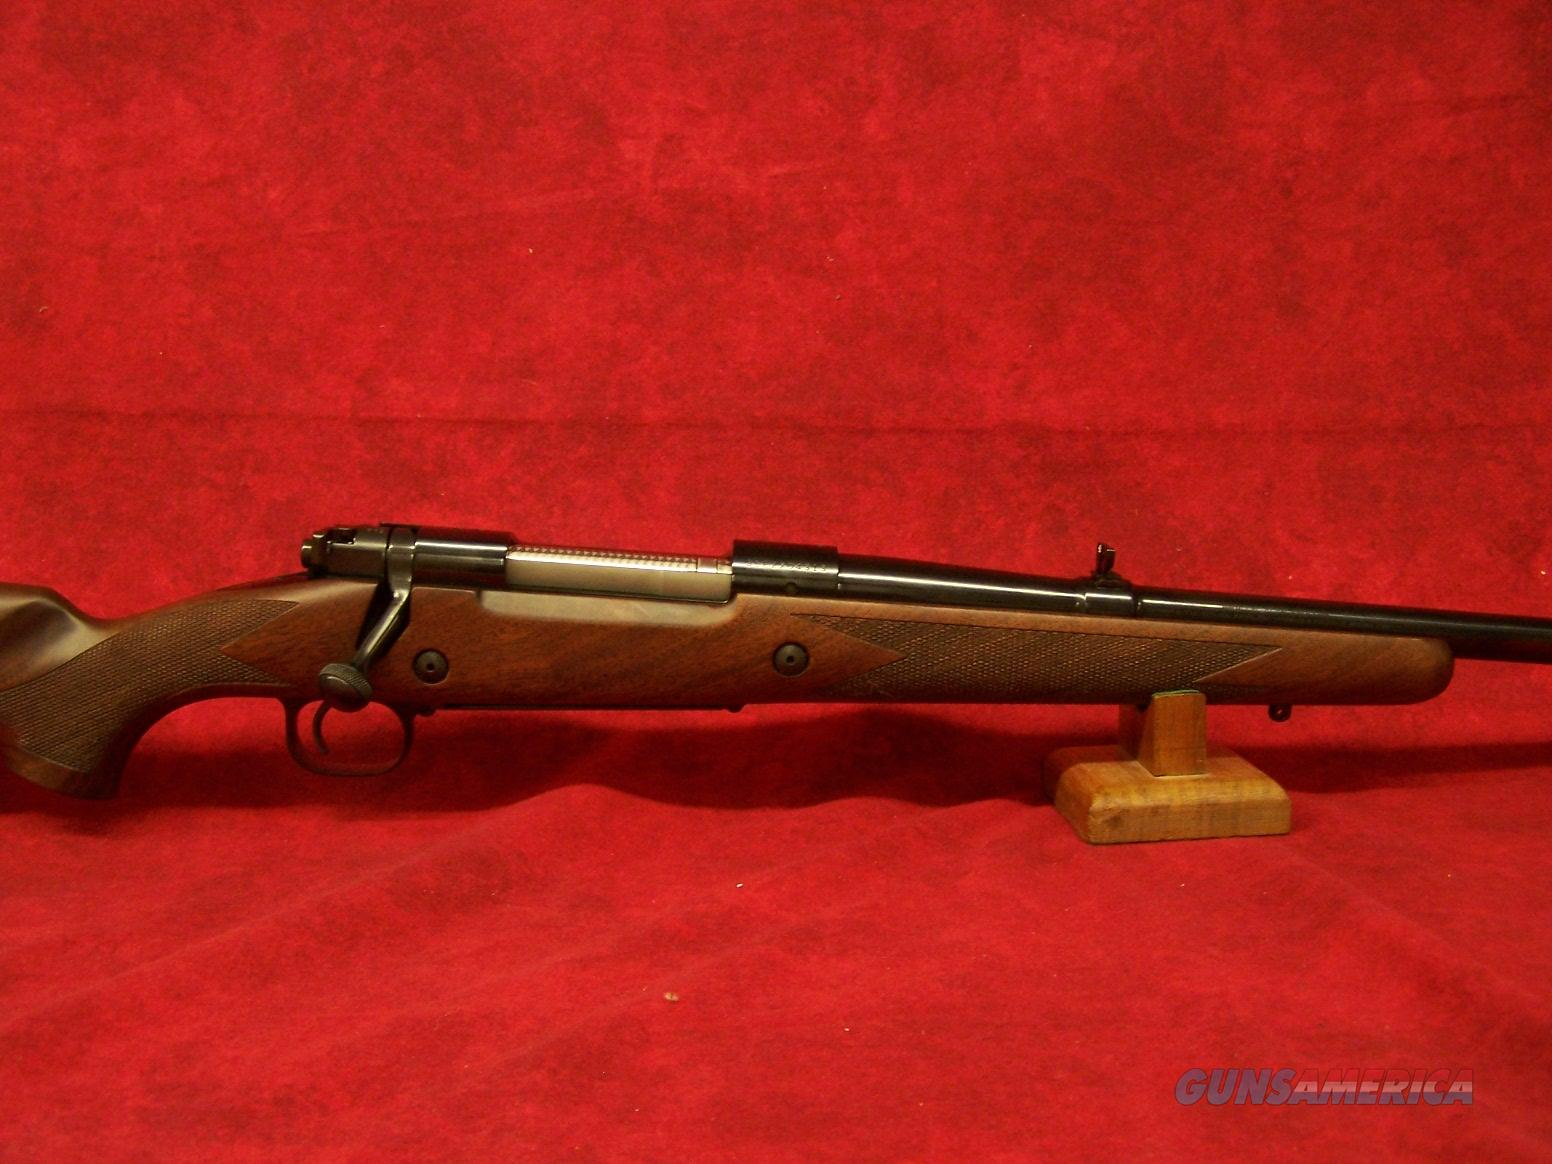 "Winchester Model 70 Alaskan .375 H&H 25"" Barrel with sights (535205138)   Guns > Rifles > Winchester Rifles - Modern Bolt/Auto/Single > Model 70 > Post-64"